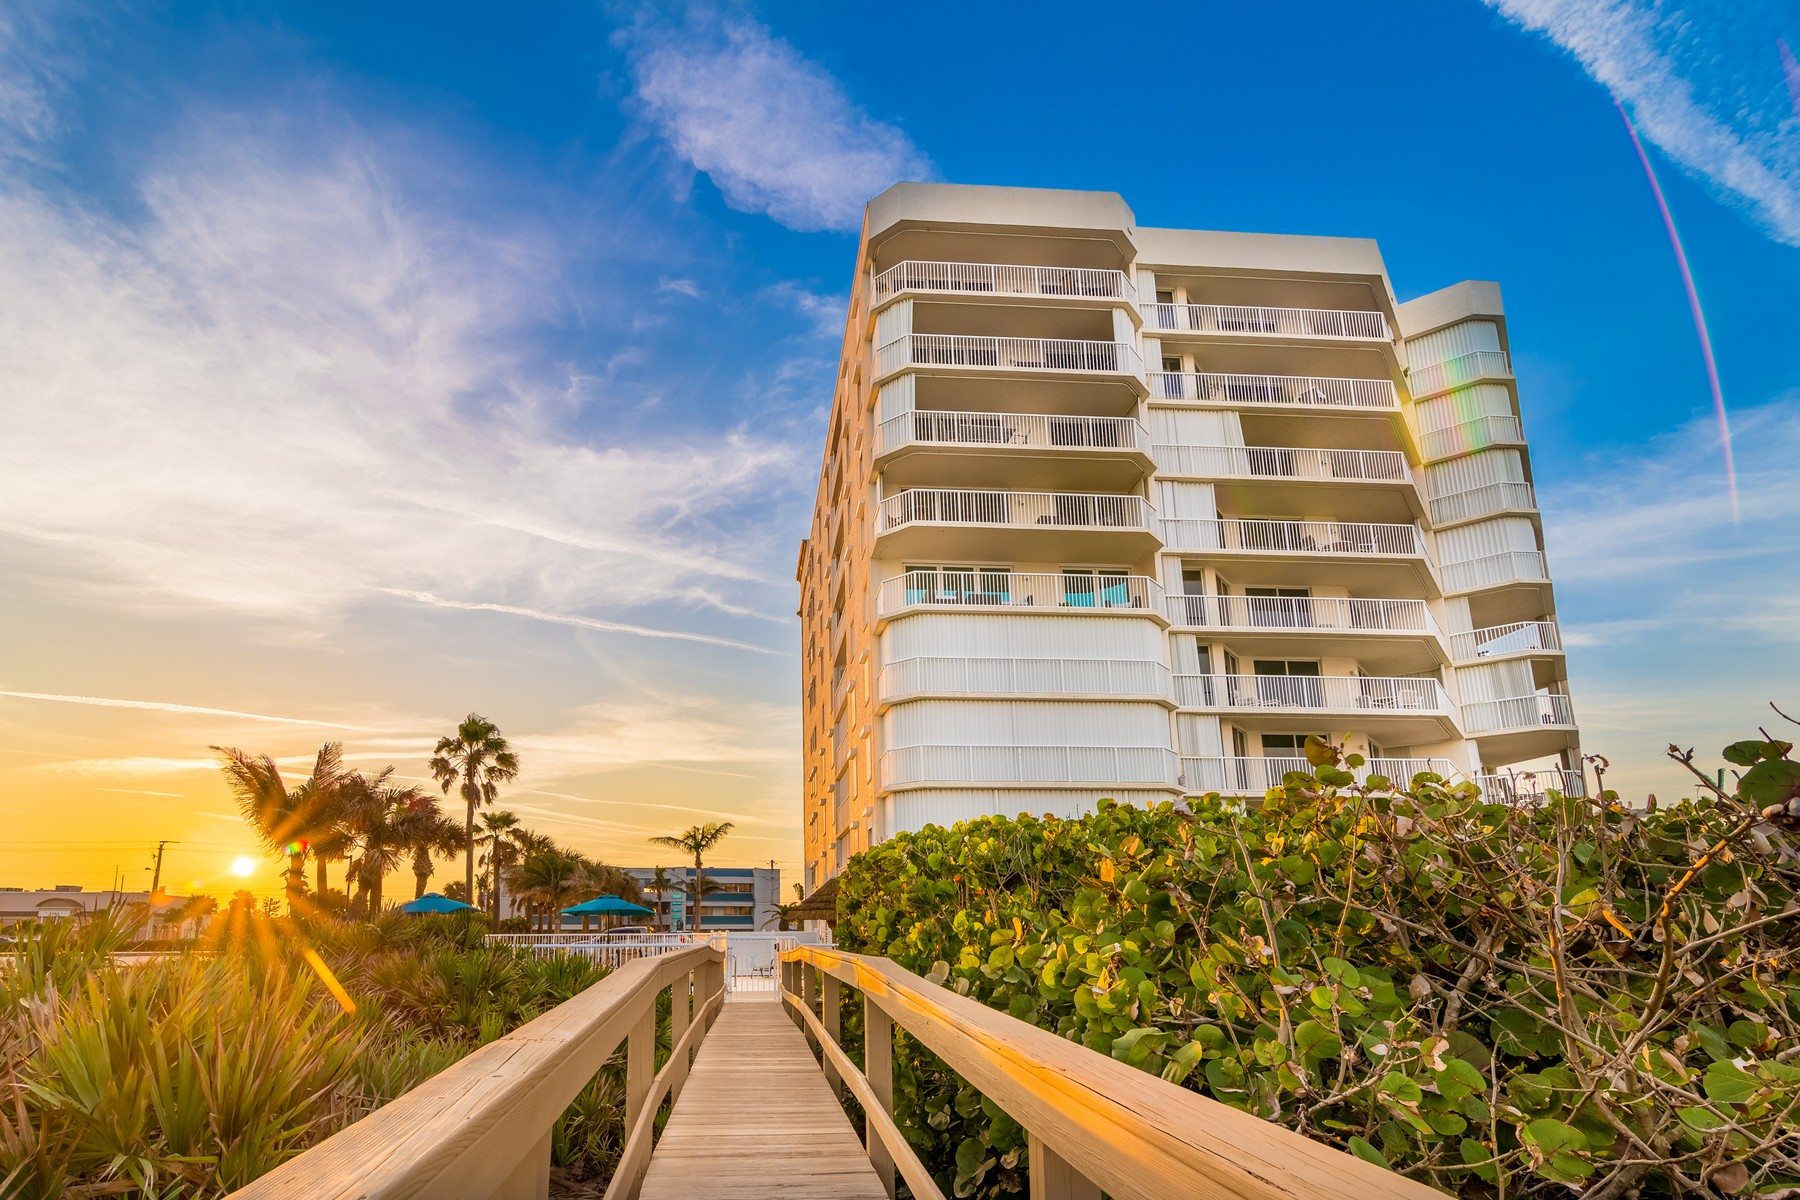 Condominium for Sale at Gardenia Oceanfront Condo 2195 Highway A1A, #402 Indian Harbour Beach, Florida 32937 United States